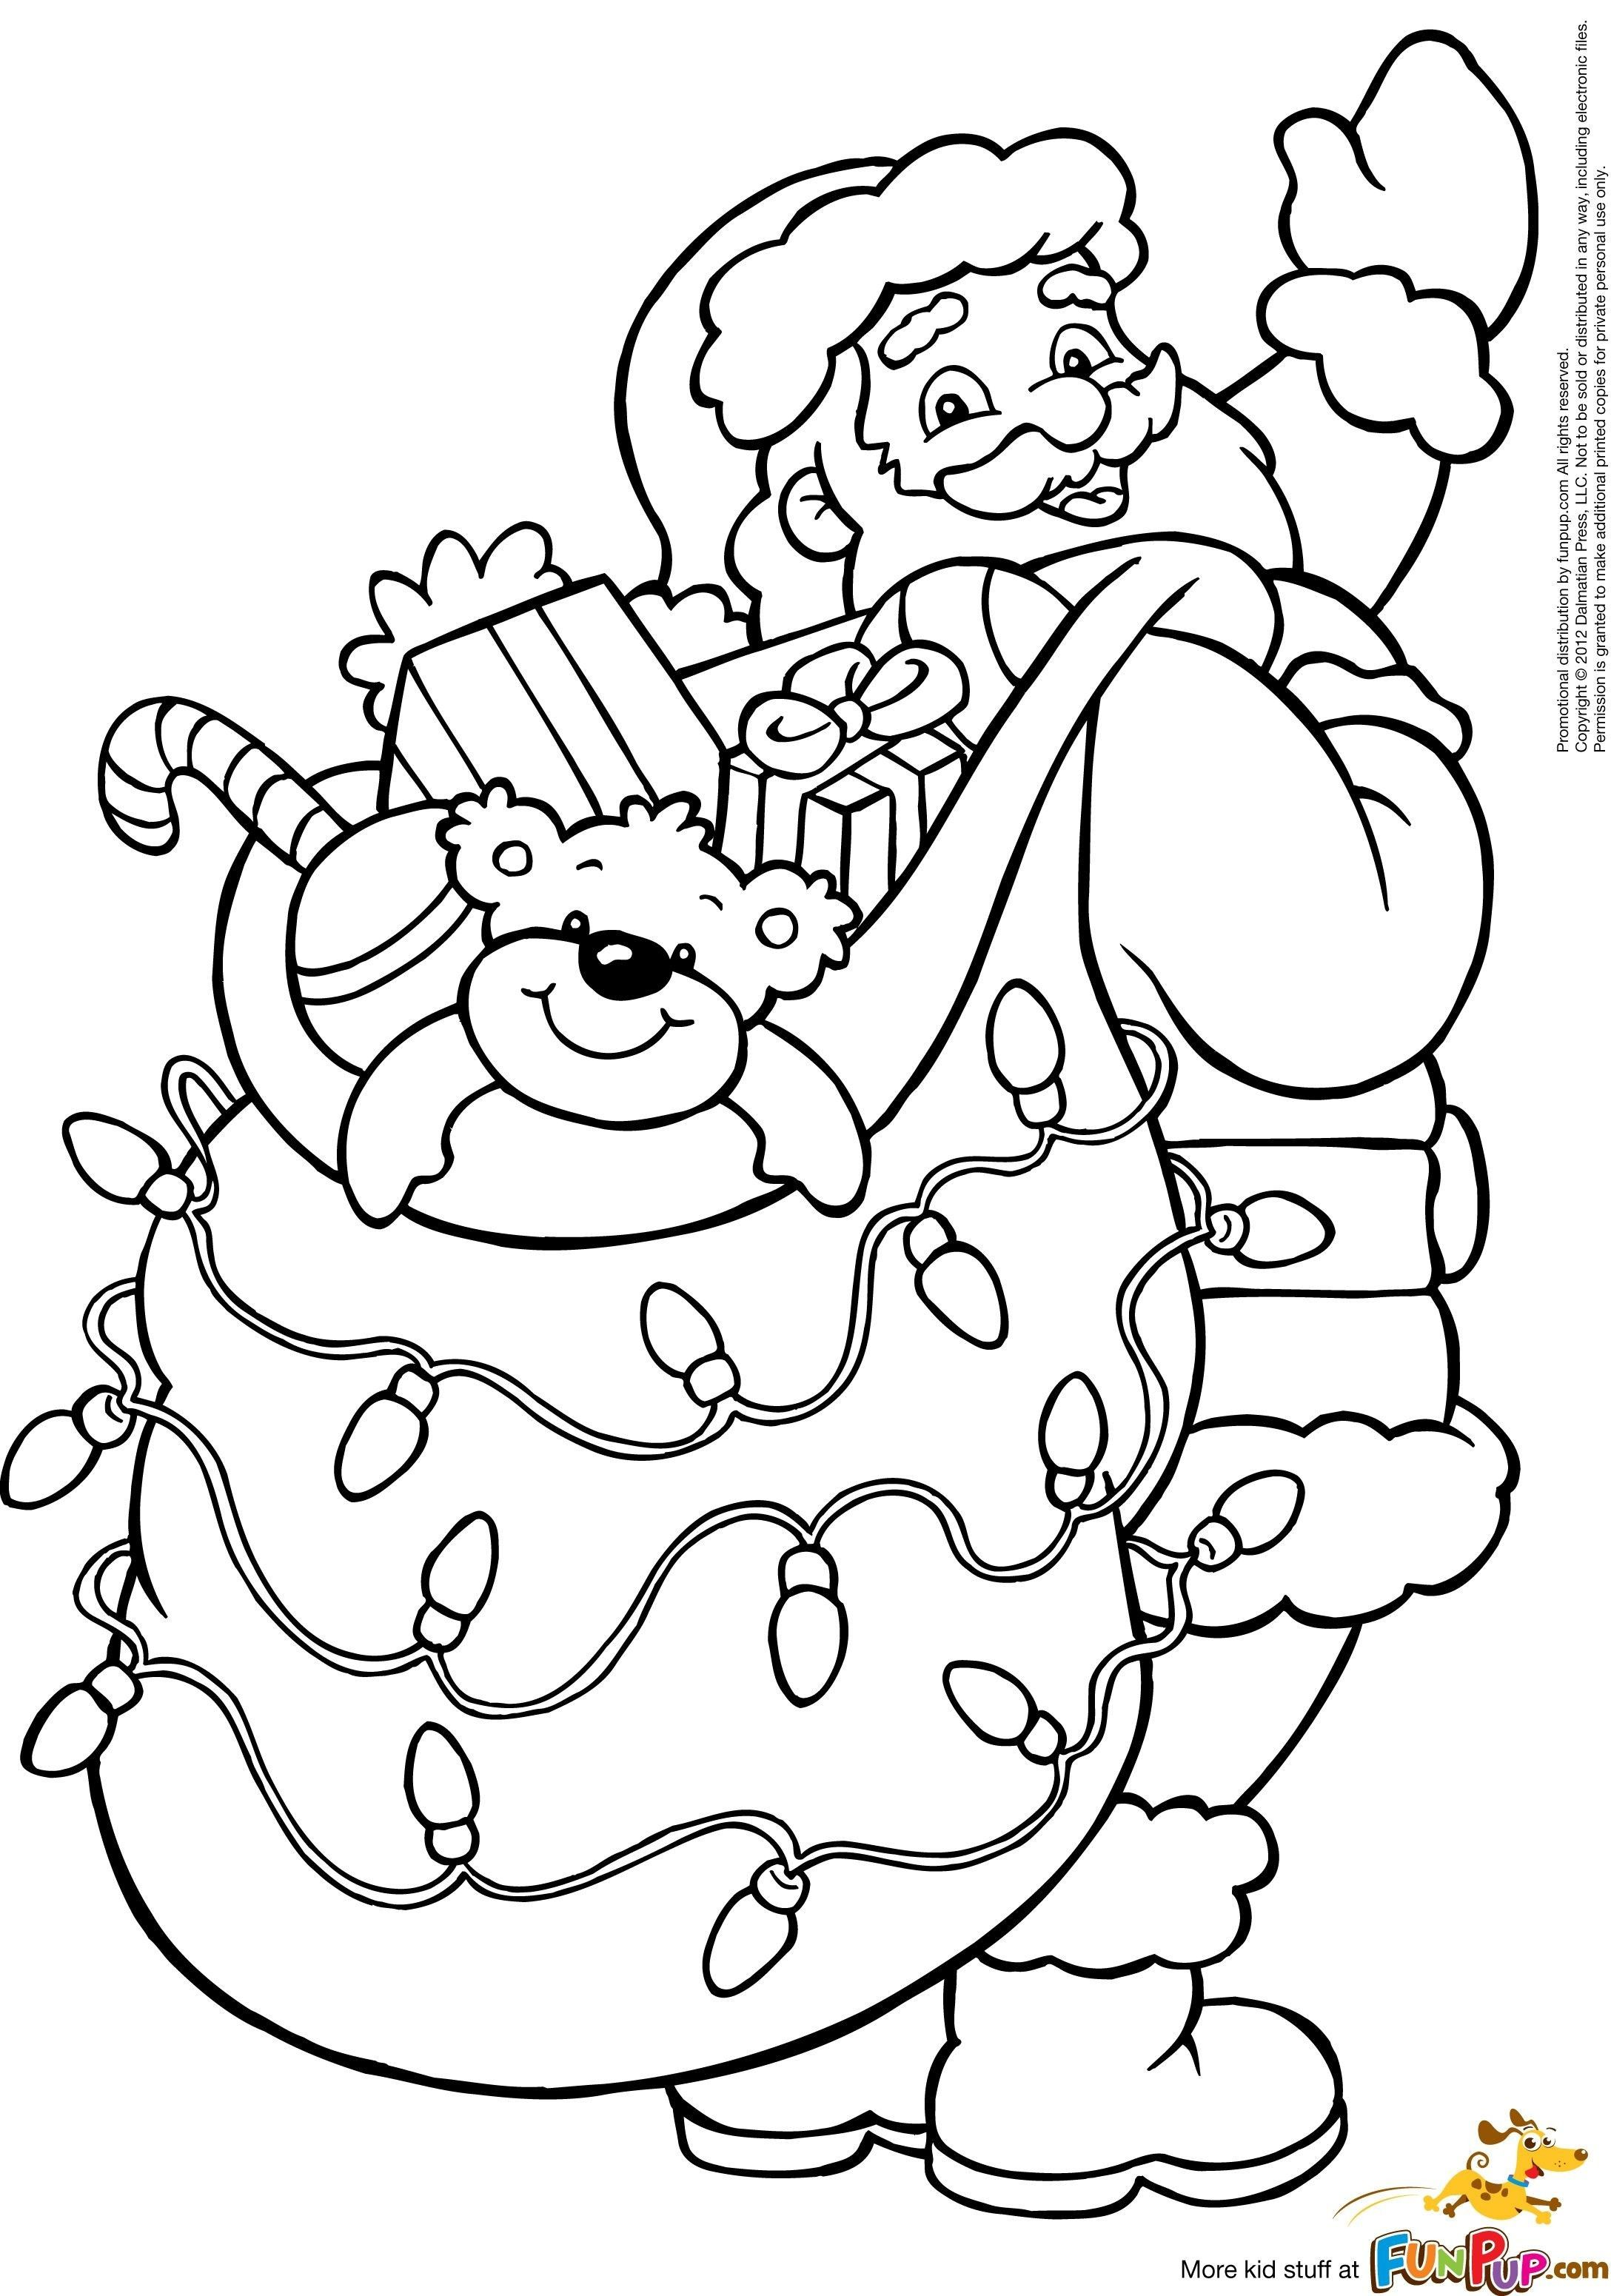 New Father Christmas Colouring Pages #coloring #coloringpages #coloringpagesfork...